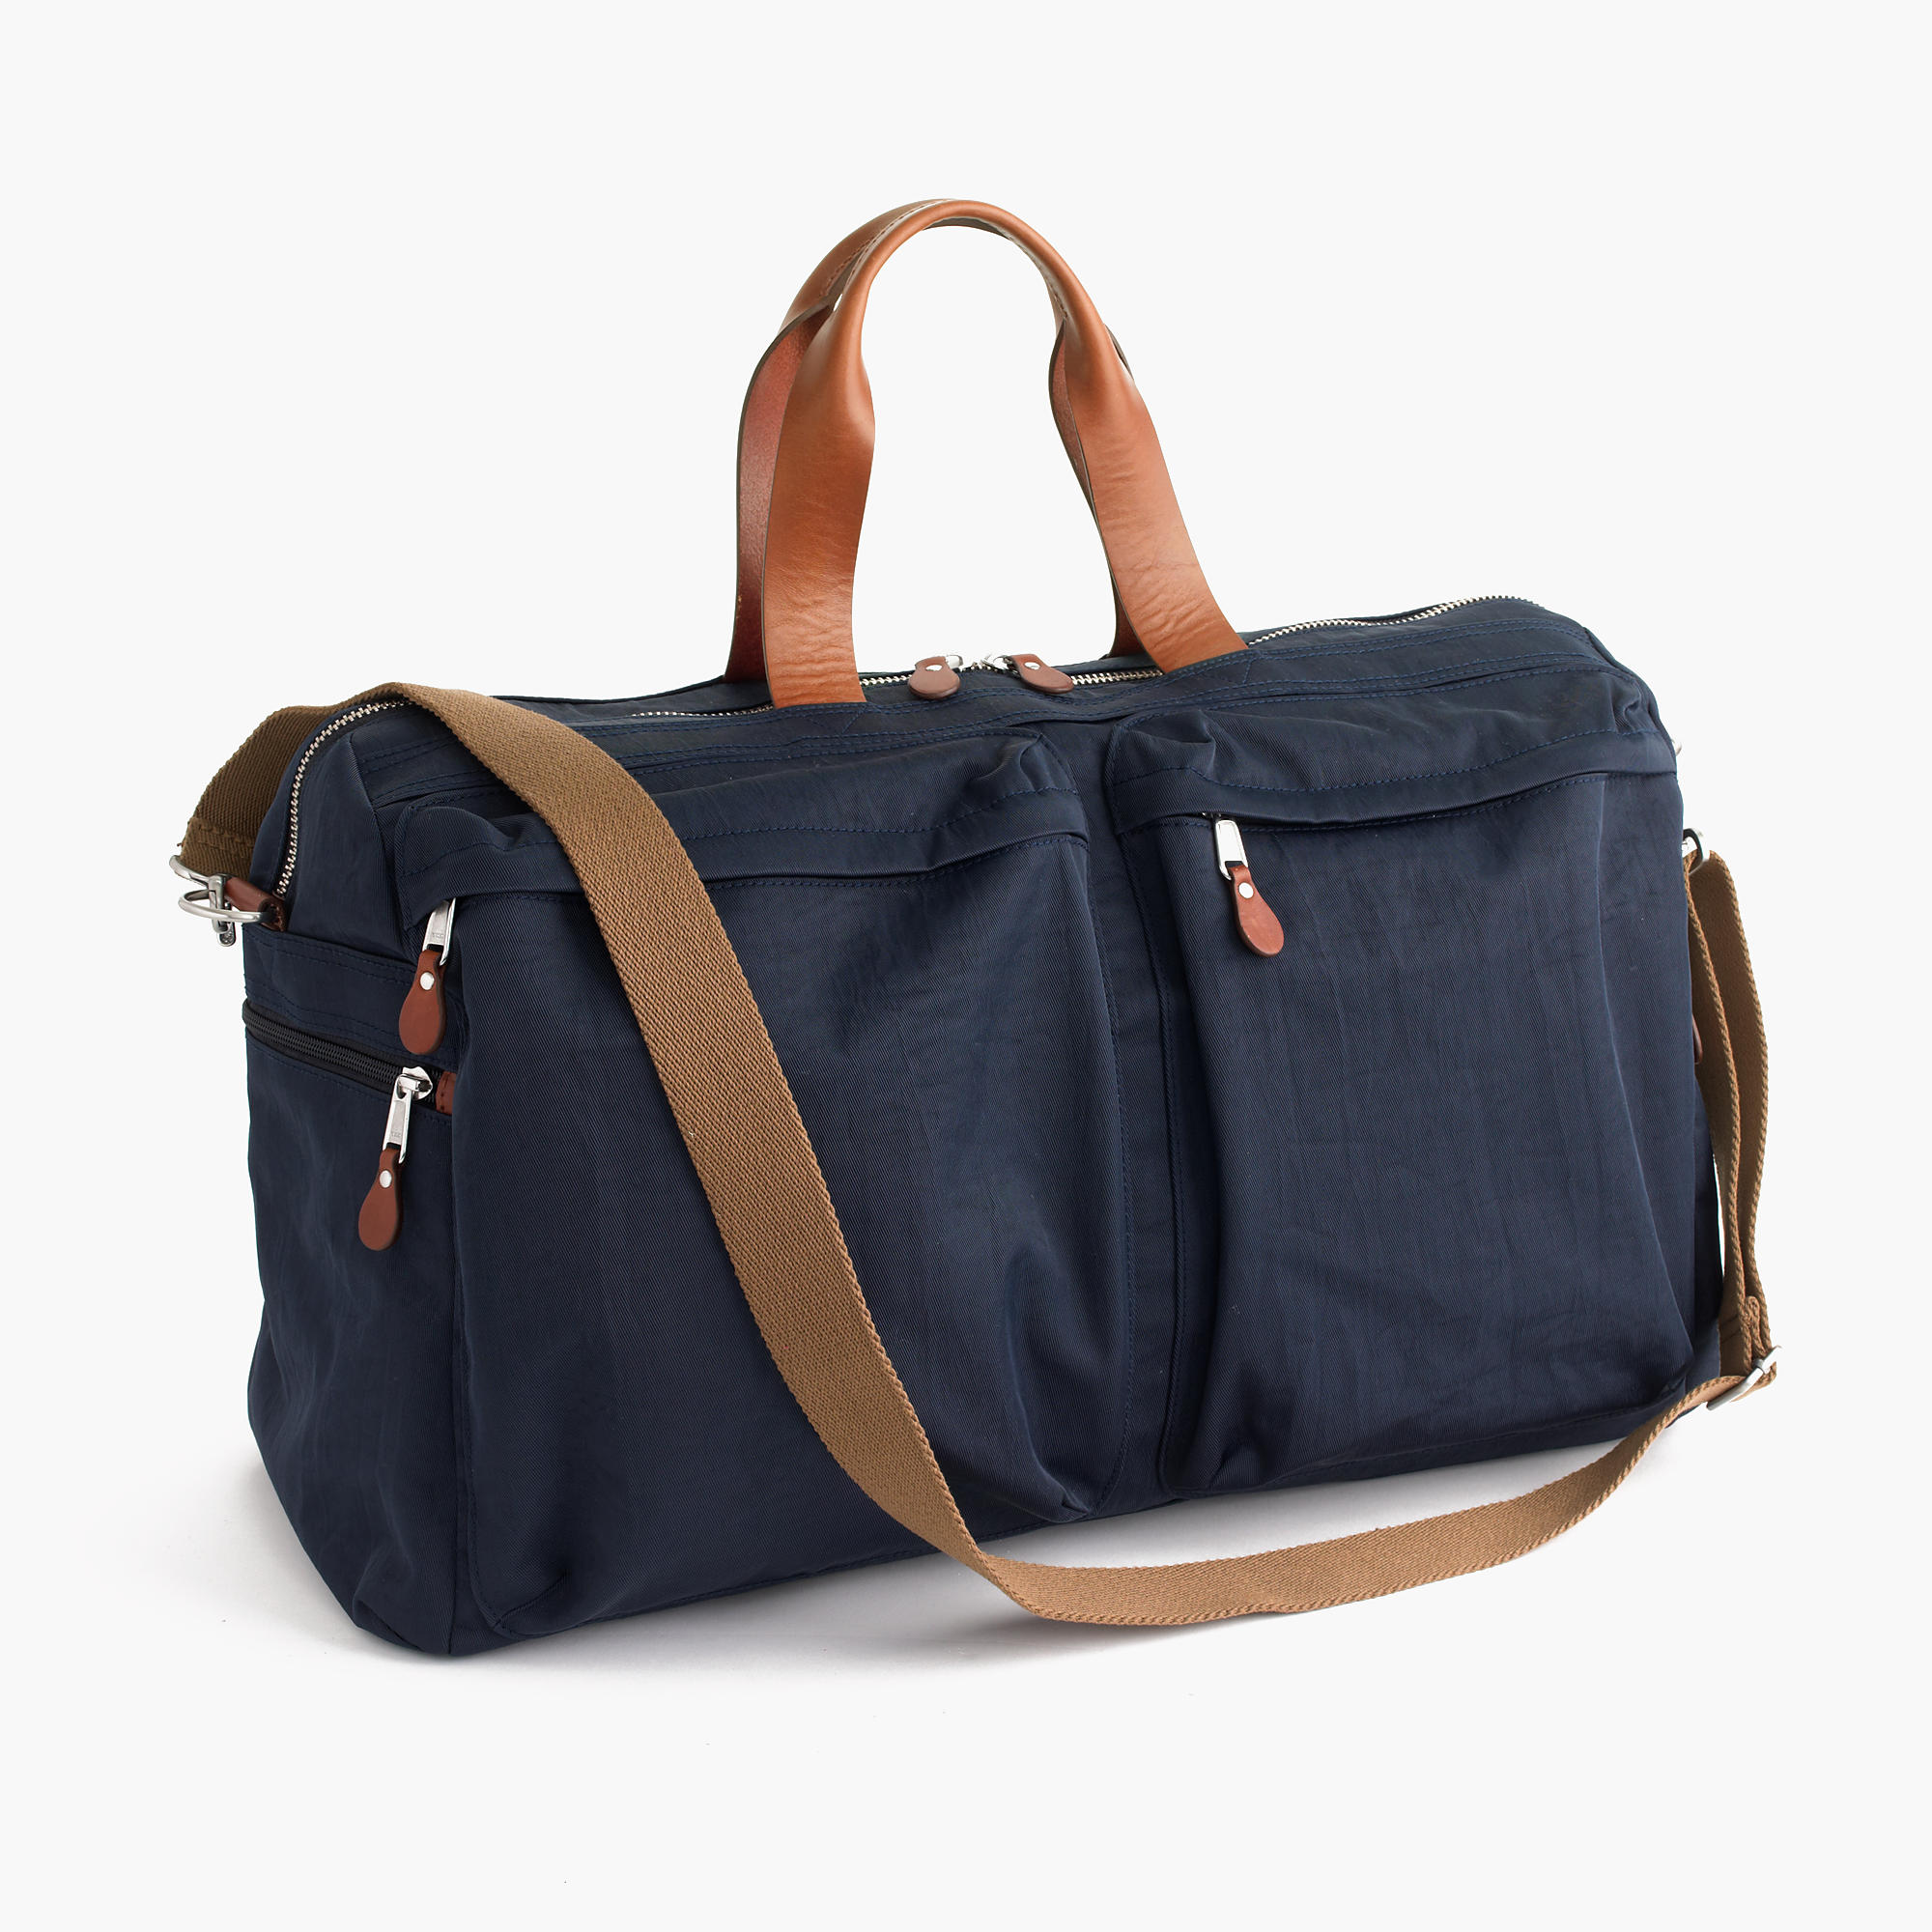 Harwick Weekender Bag : Men's Bags | J.Crew